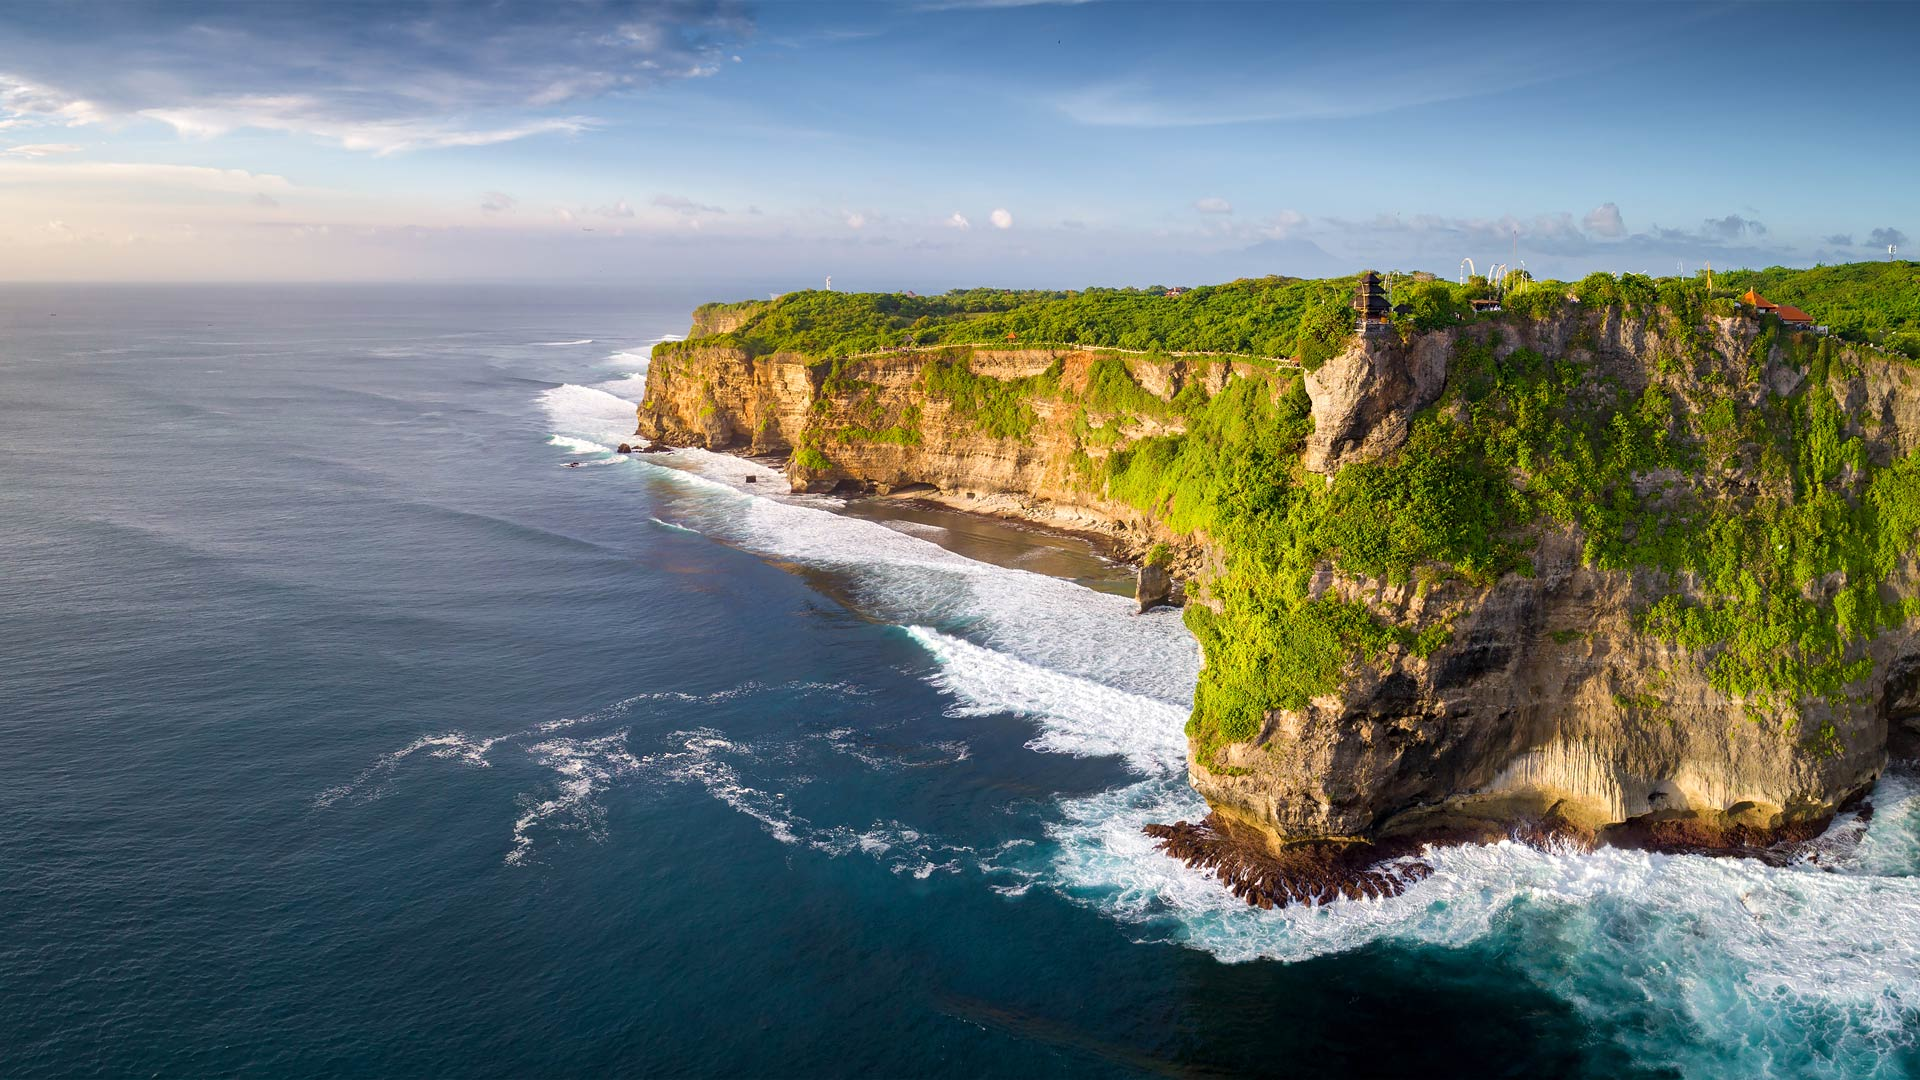 Uluwatu Travel Guide - Ultimate Bali